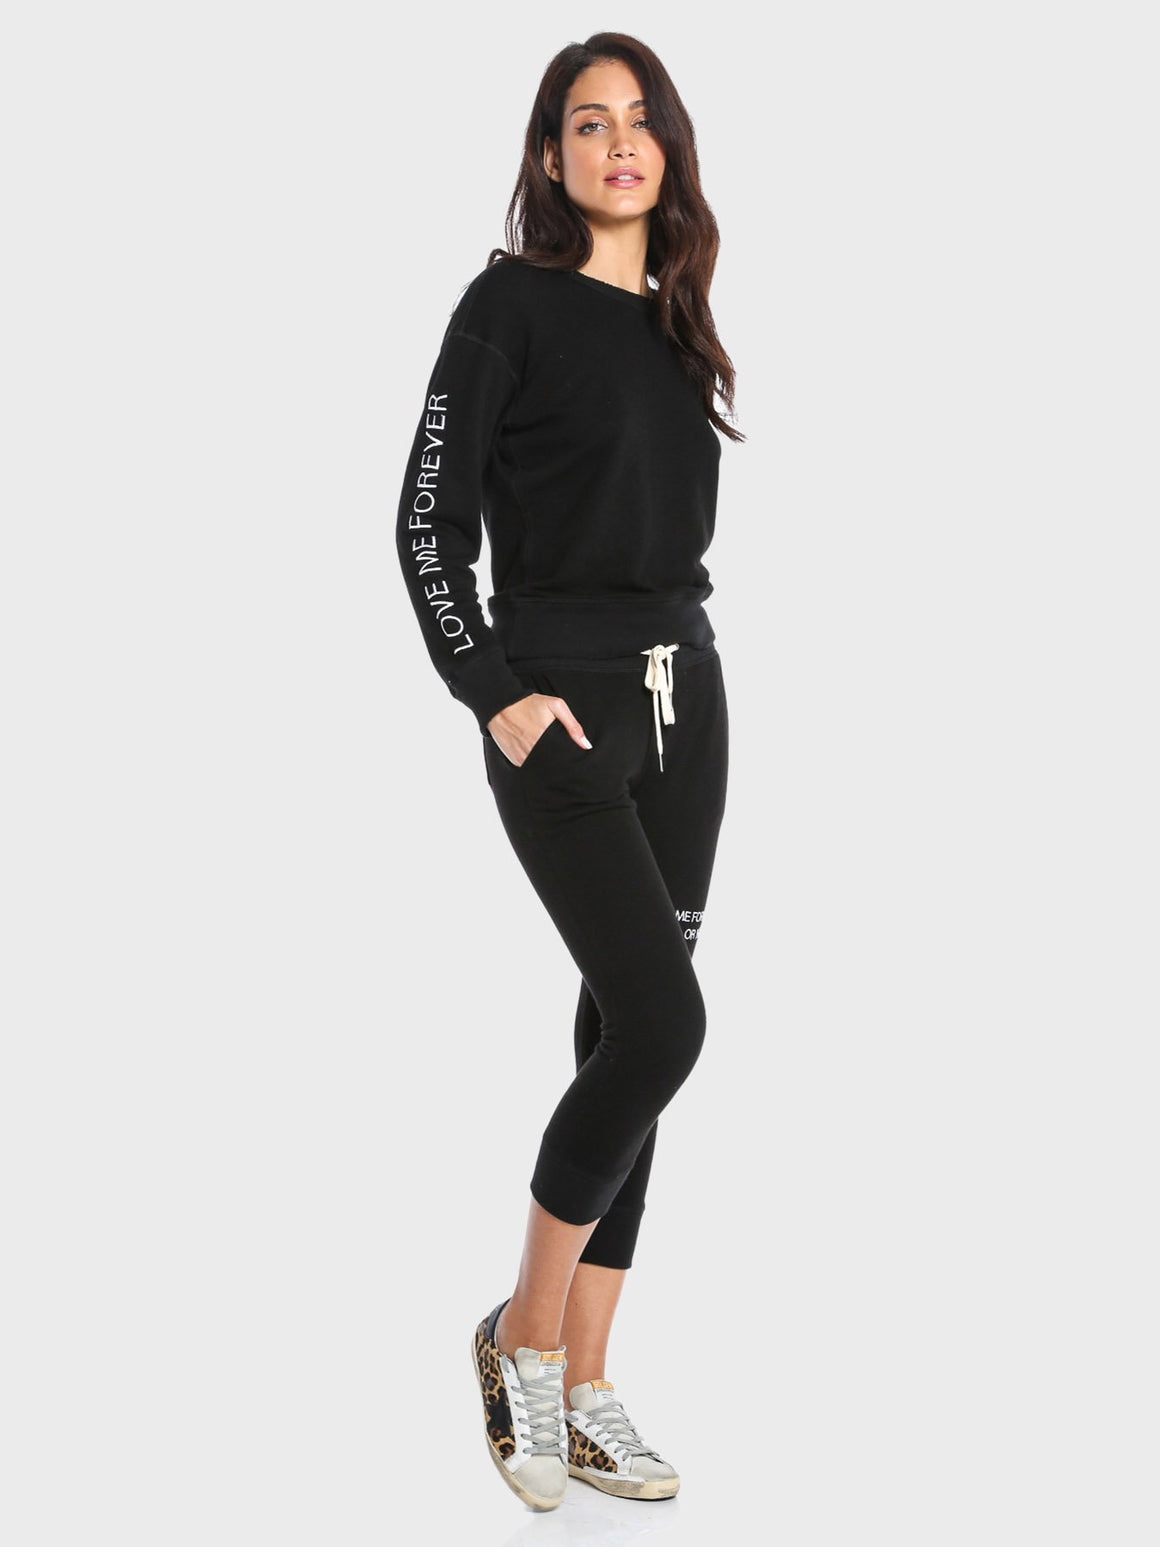 Lauren Pullover (Graphic)